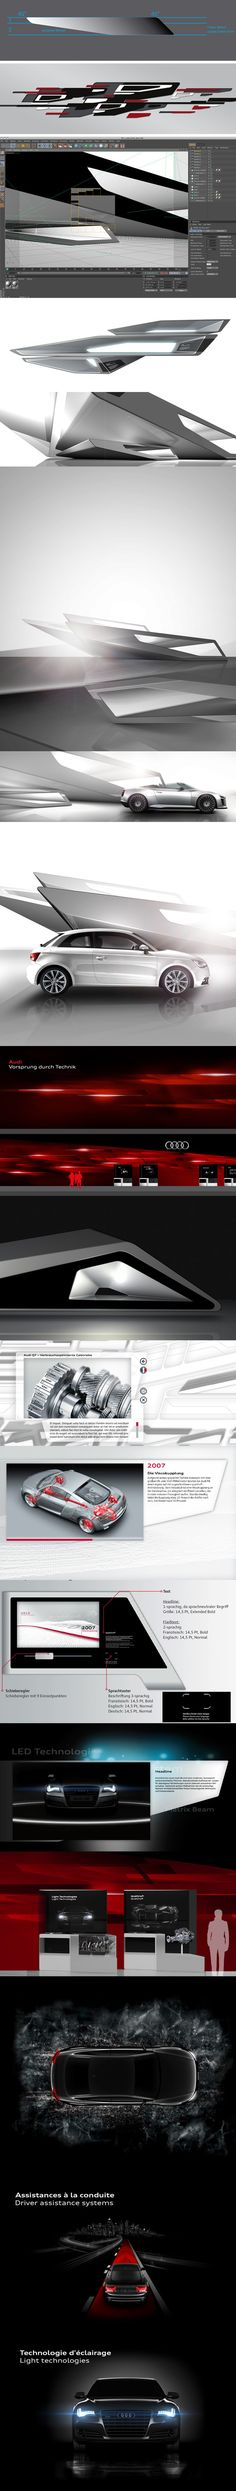 Audi Paris Motorshow Stand 2010 by Malte Schweers, via Behance